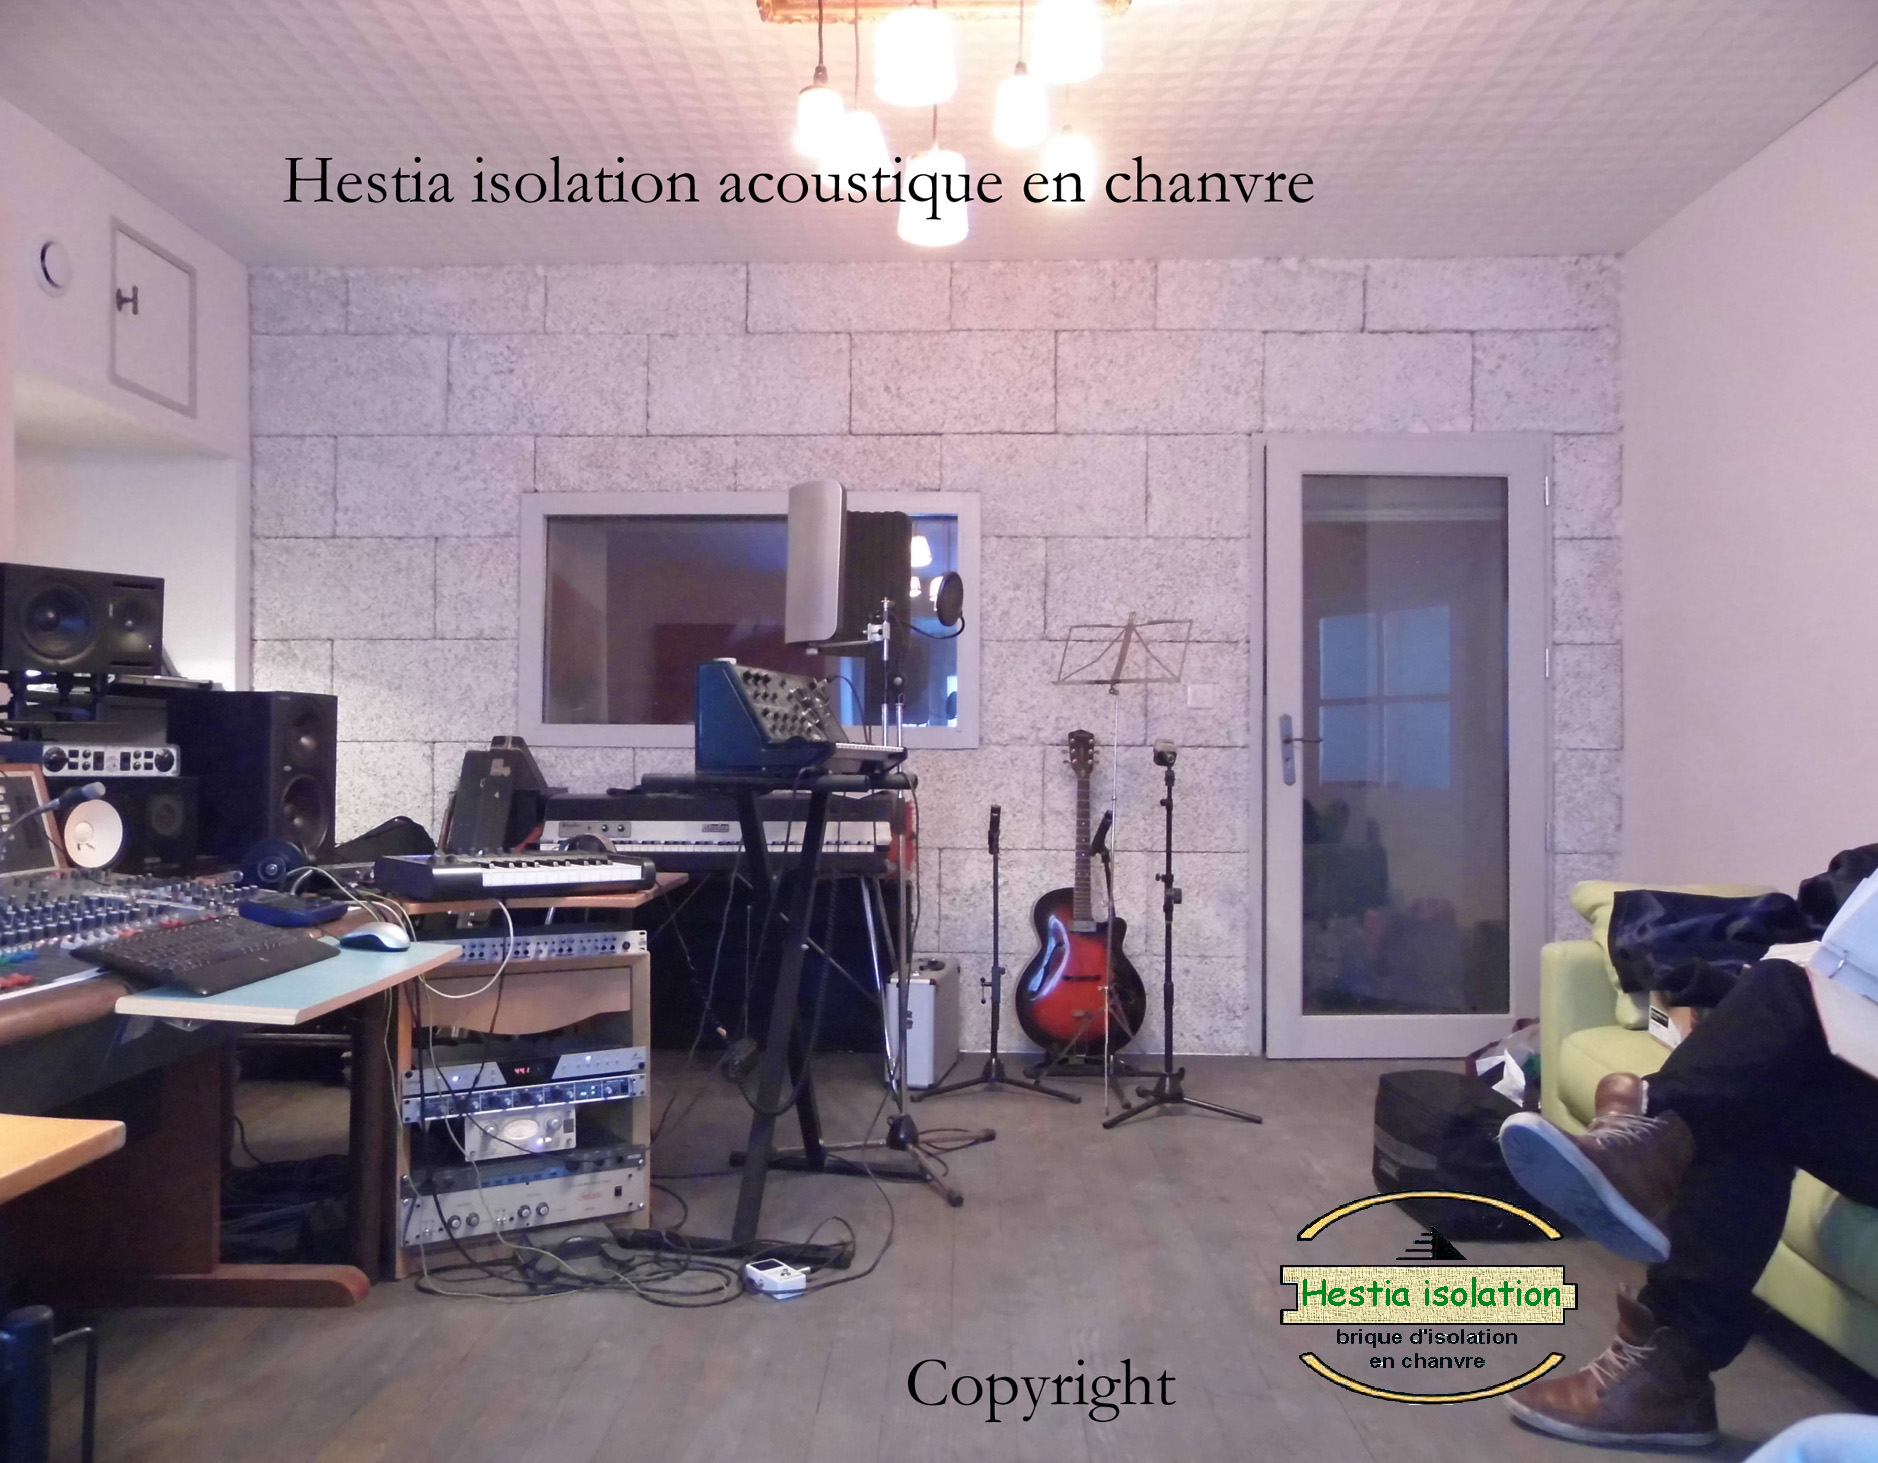 hestia isolation Hestia acoustic treatment sound insulation hemp brick block panels tiles panel tile best recording studio absorption musical musical room concert rehearsal drums sax piano guitar hemp home theater rectification noise interior exterior quality lime